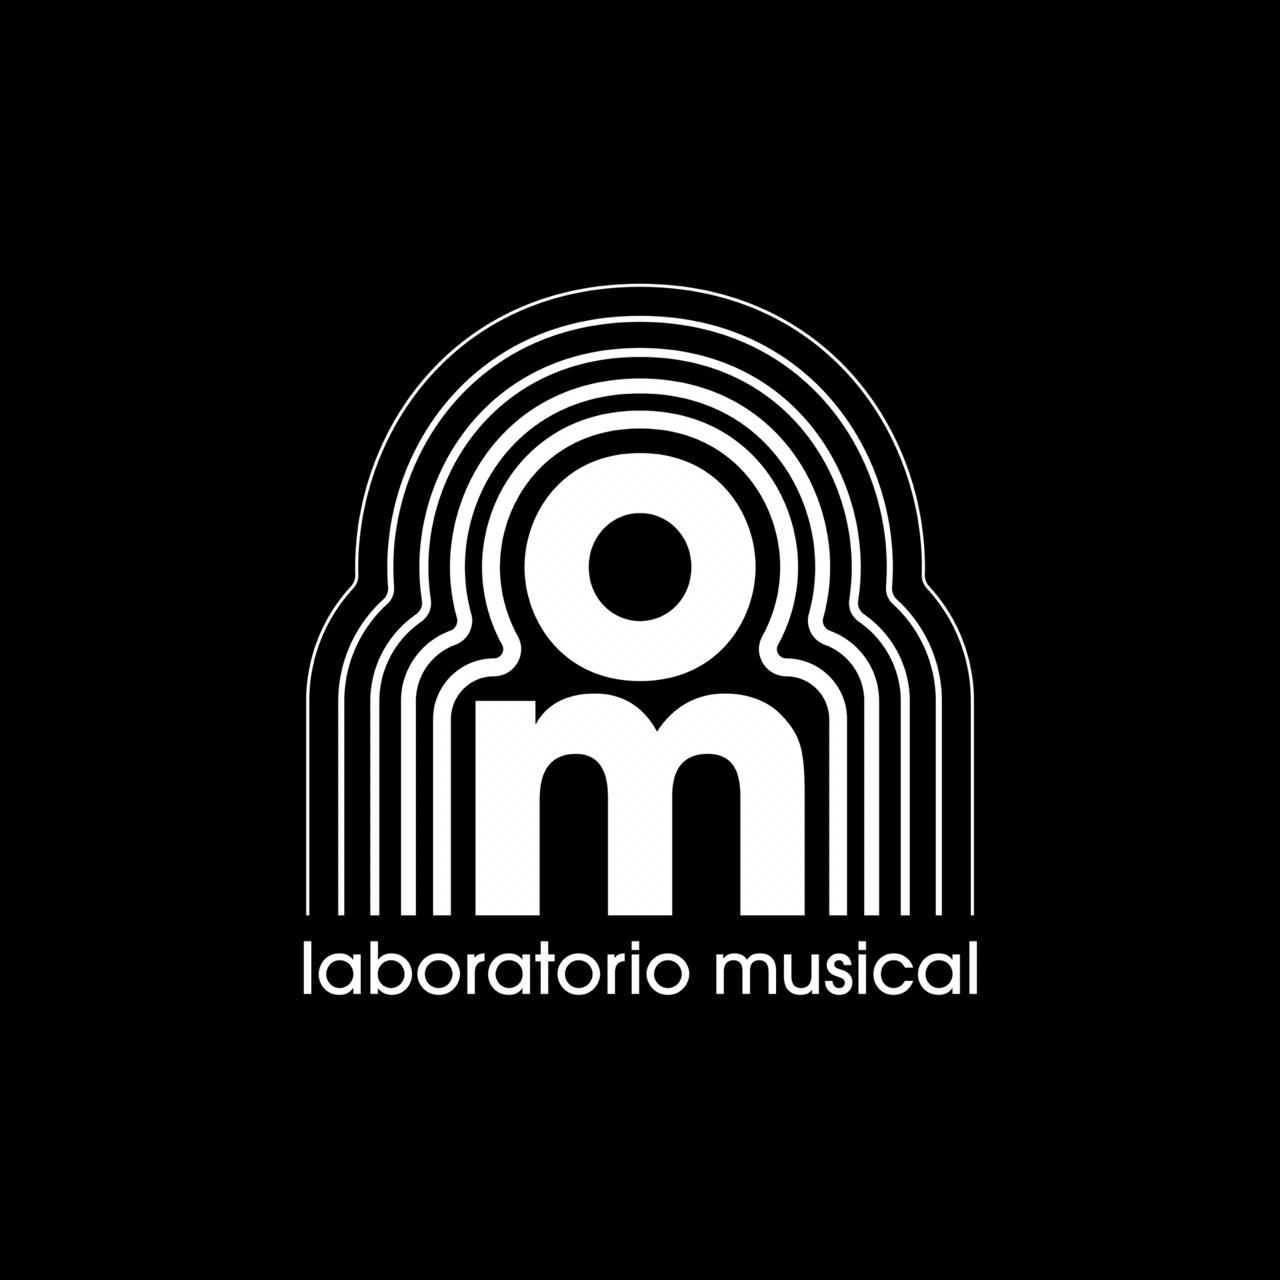 OM Laboratorio Musical Image